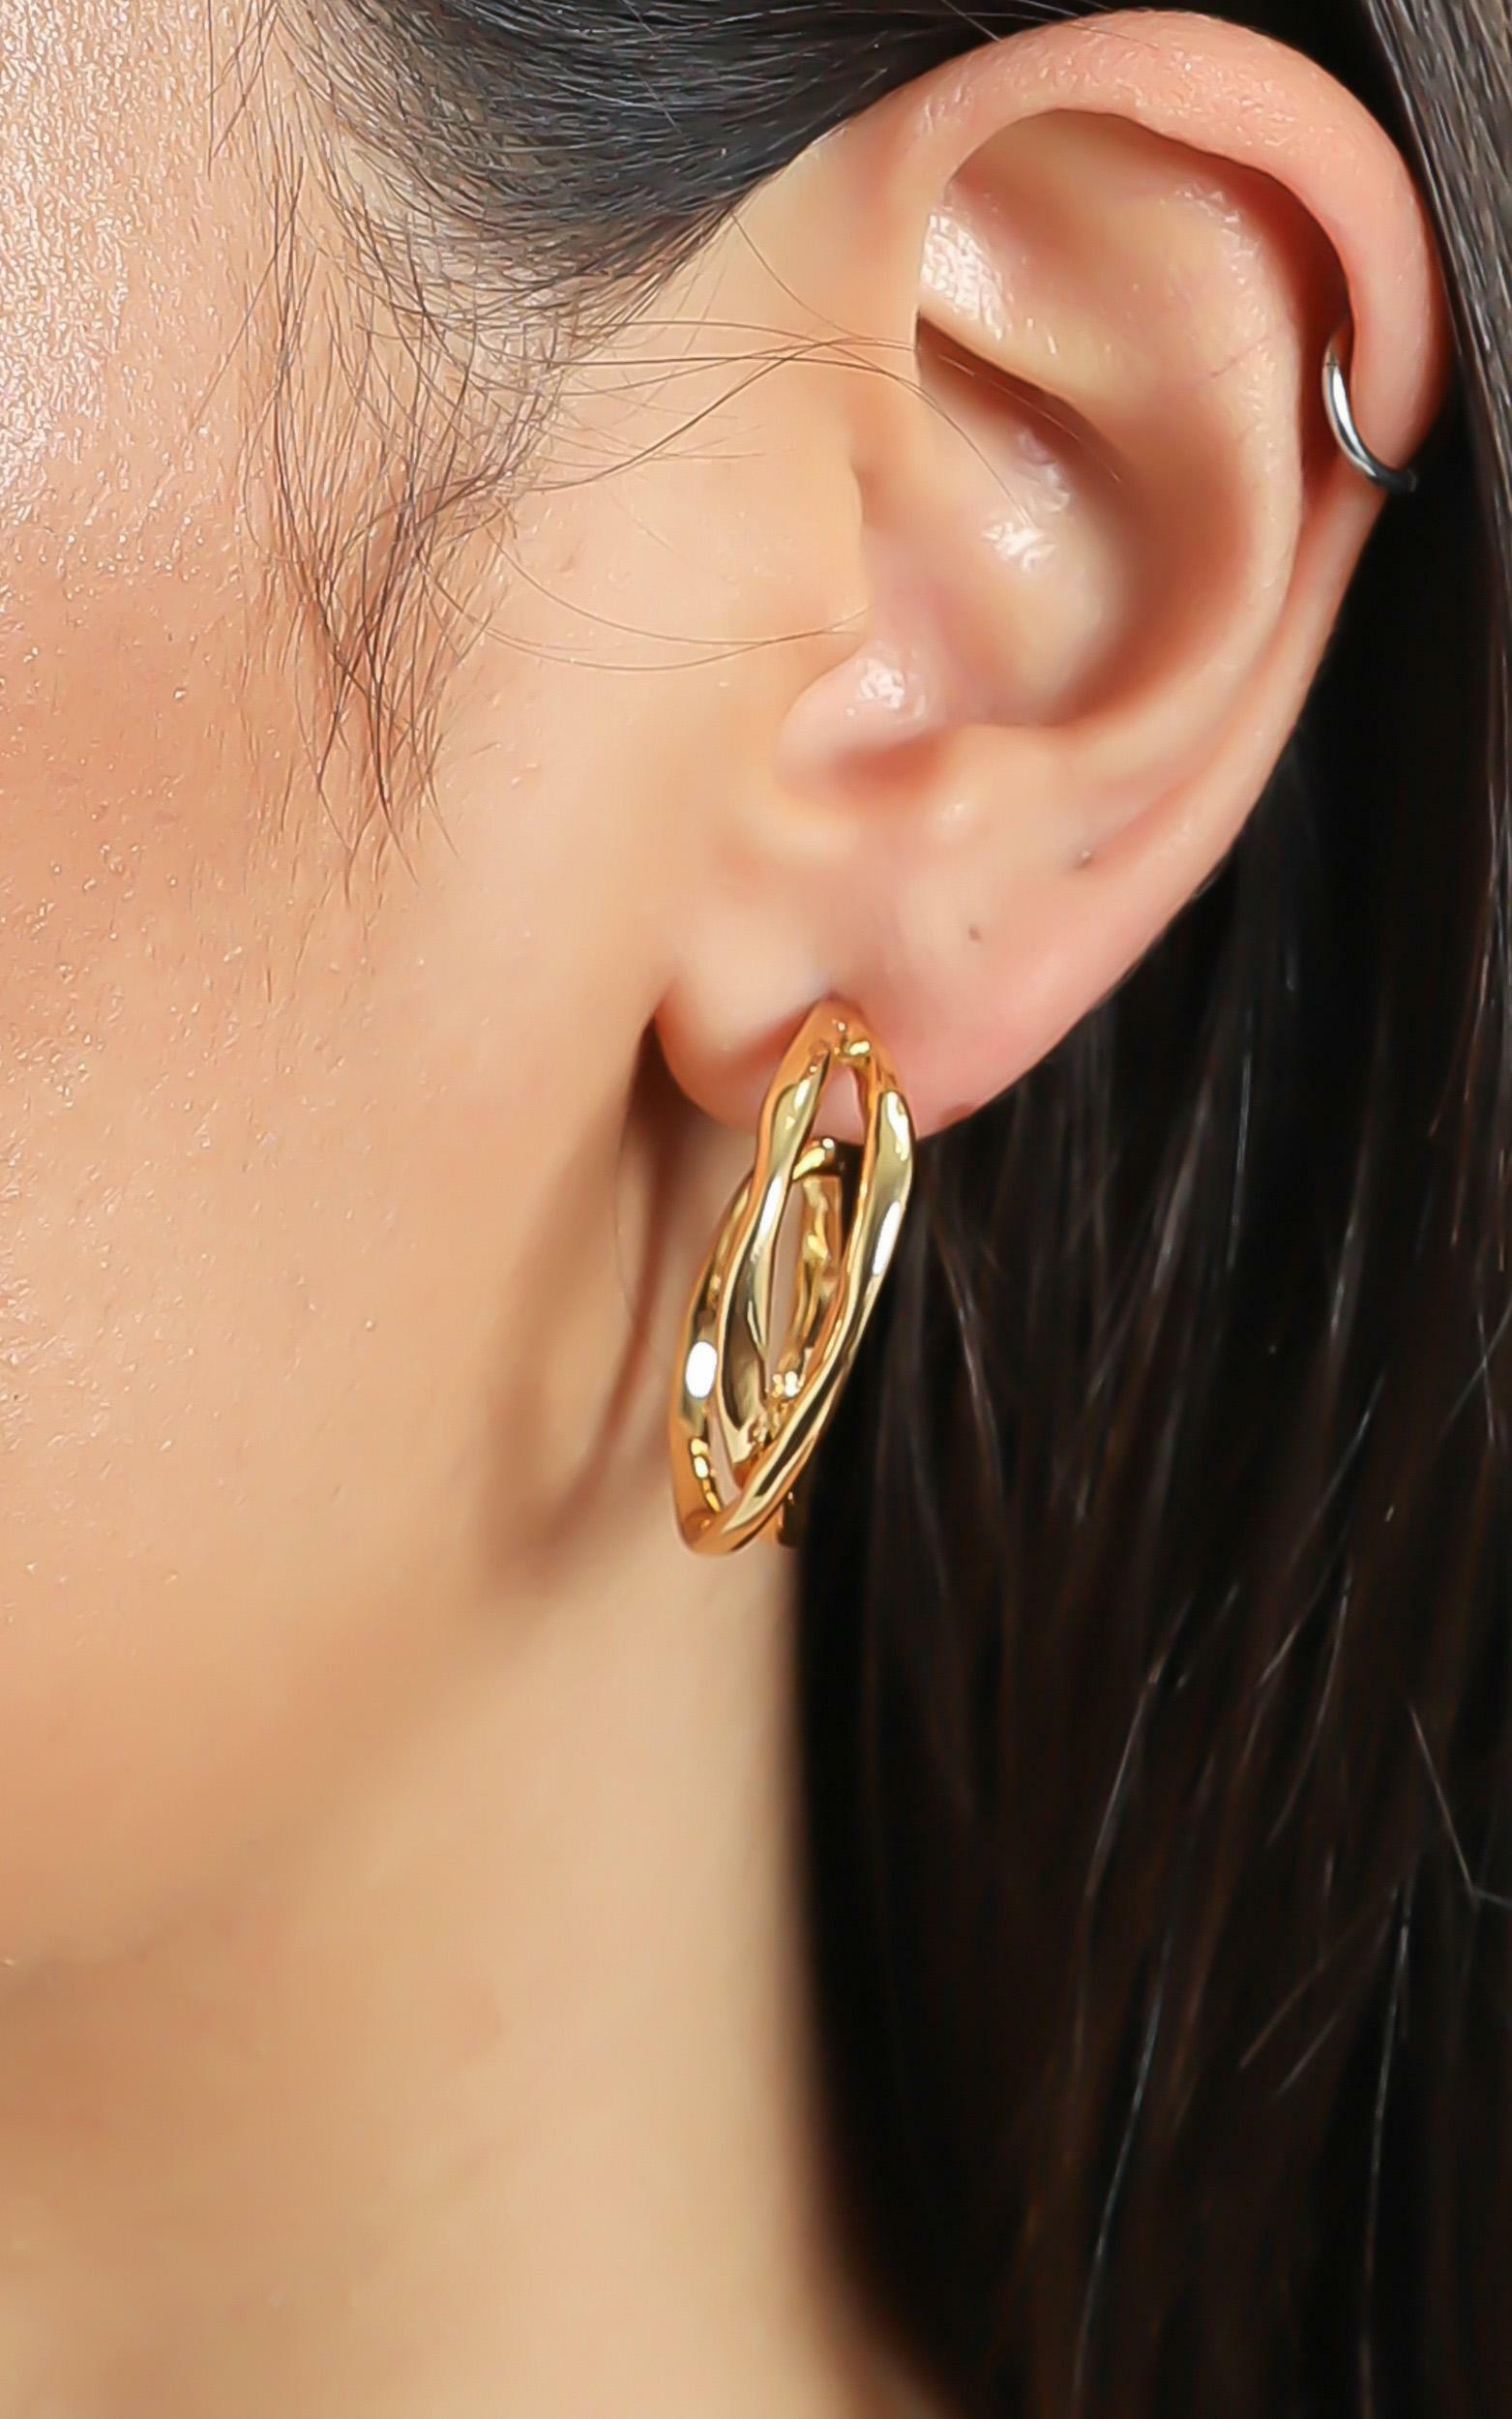 Reliquia - Devotion Earrings in Gold, GLD1, hi-res image number null